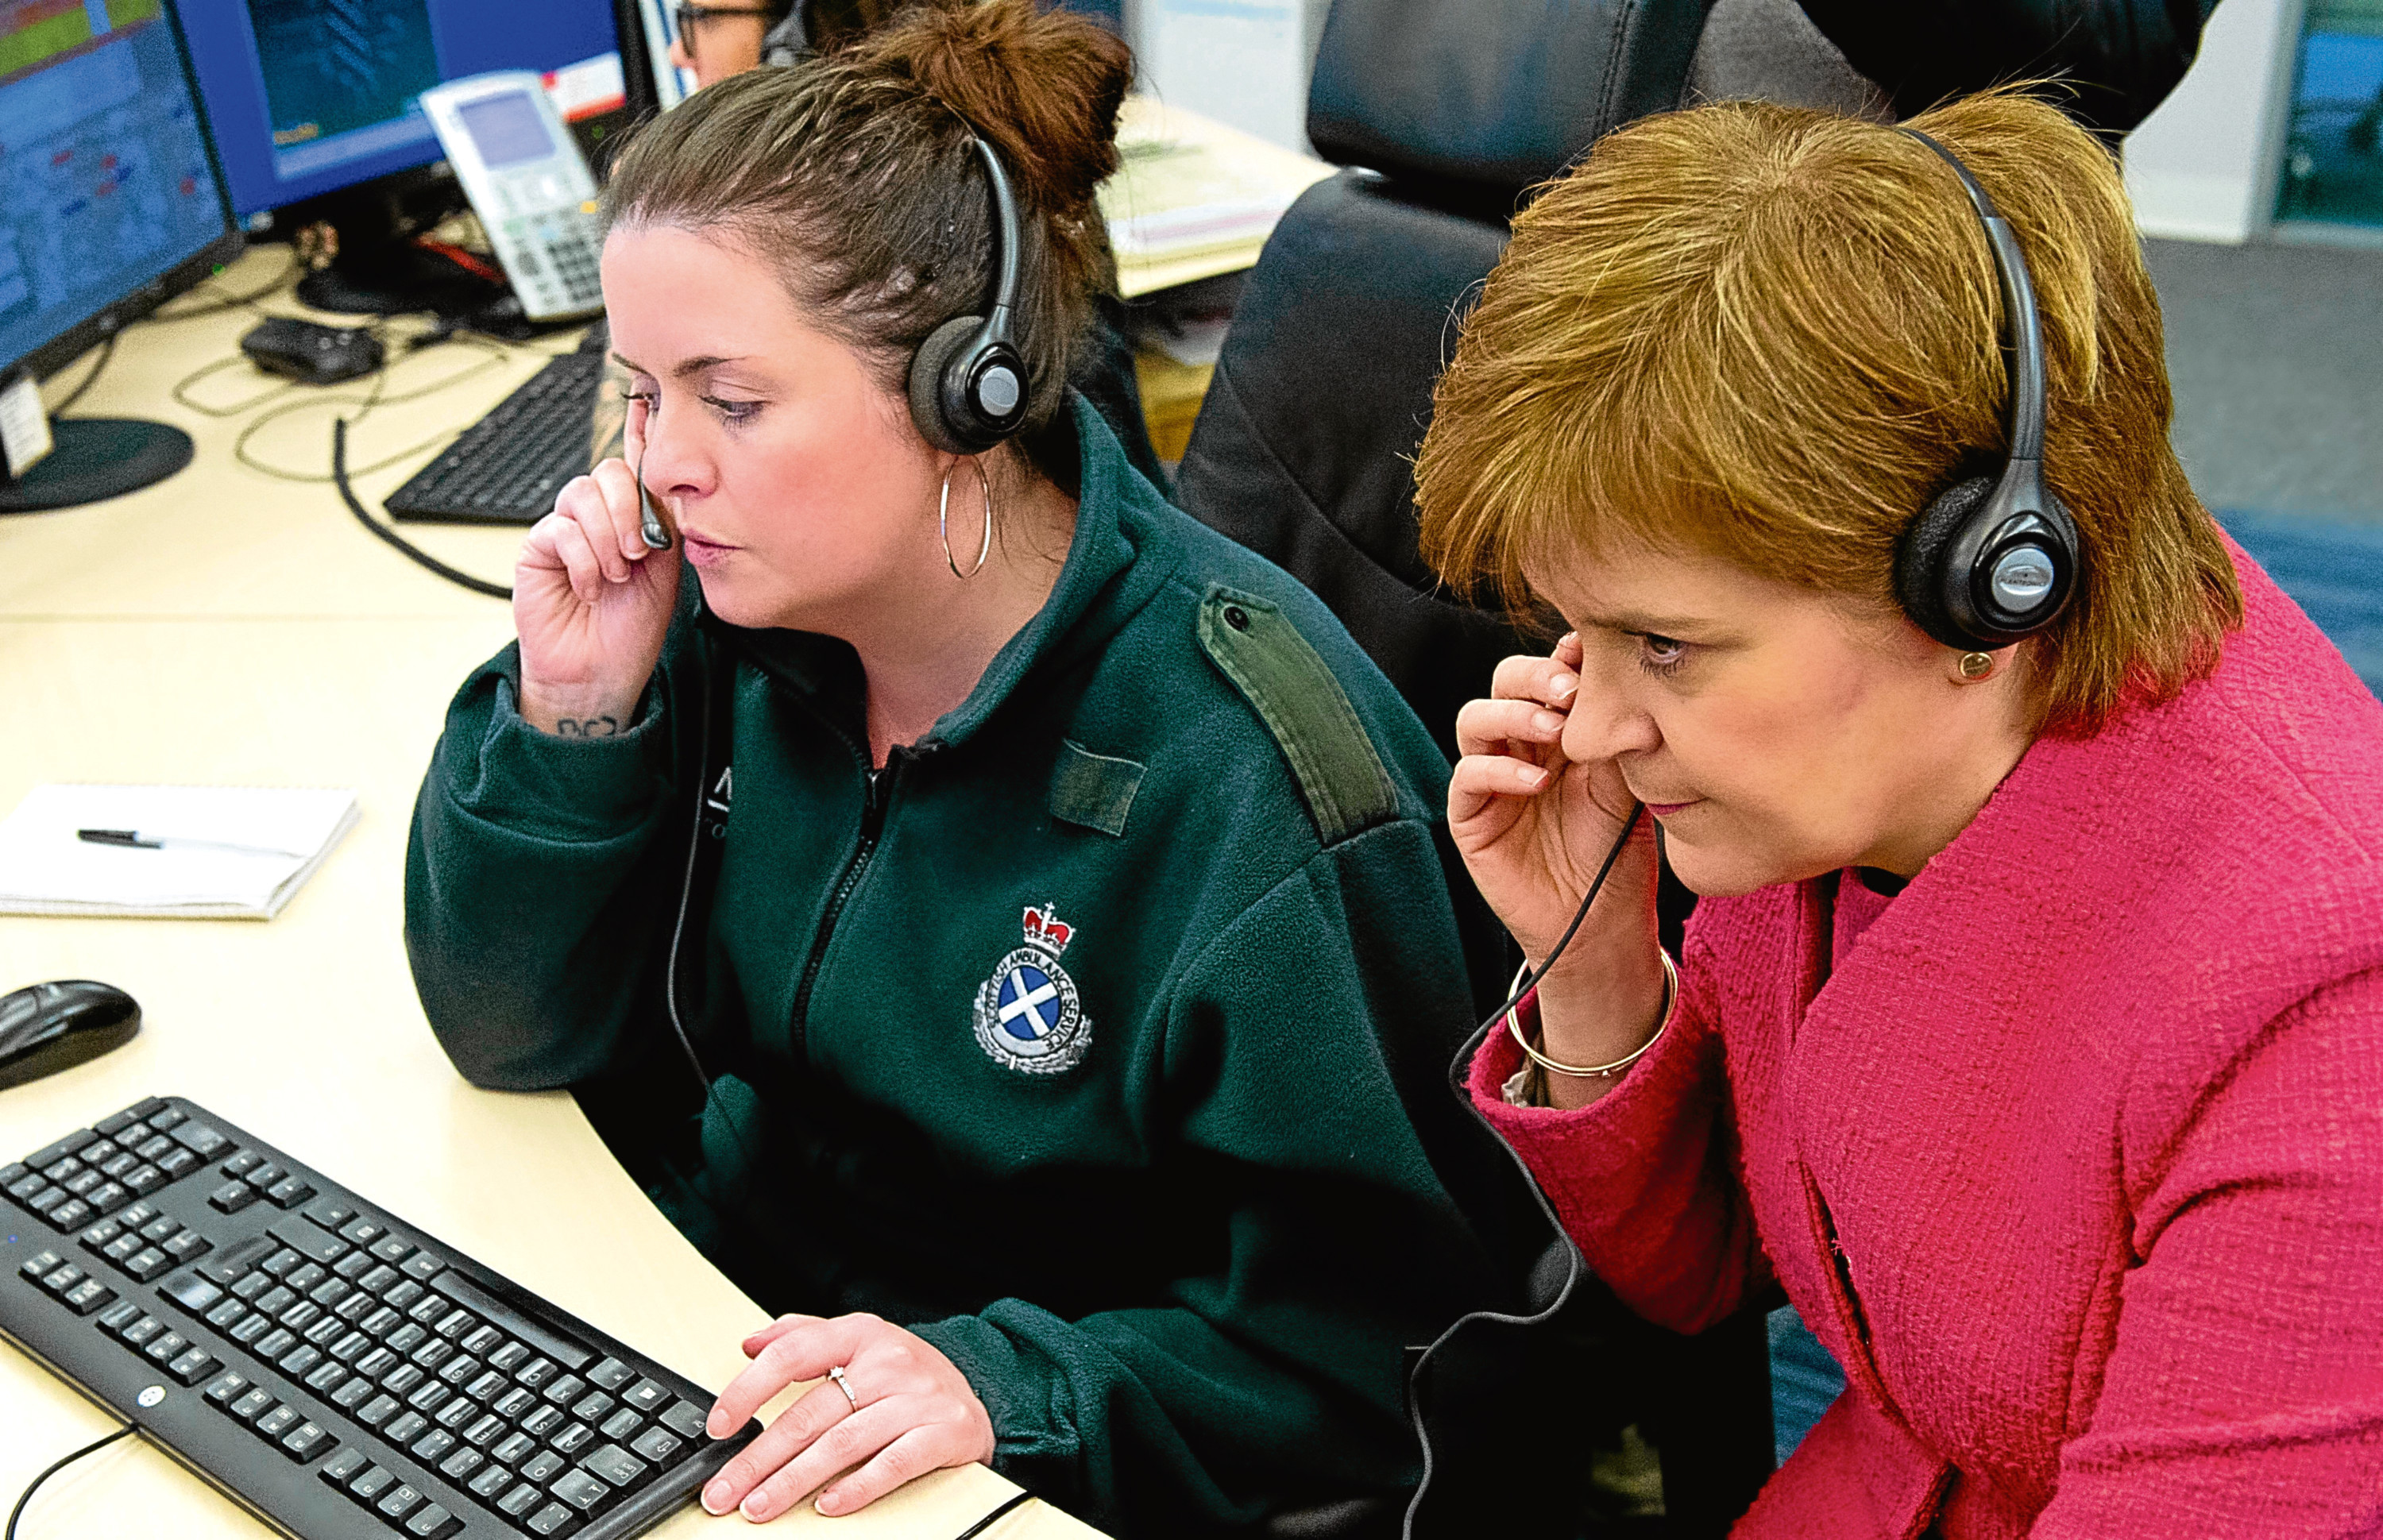 First Minister Nicola Sturgeon listens into a 999 call with Avril as she tours call centre and meets Scottish Ambulance Service call handlers, and NHS 24 staff in Cardonald Glasgow.